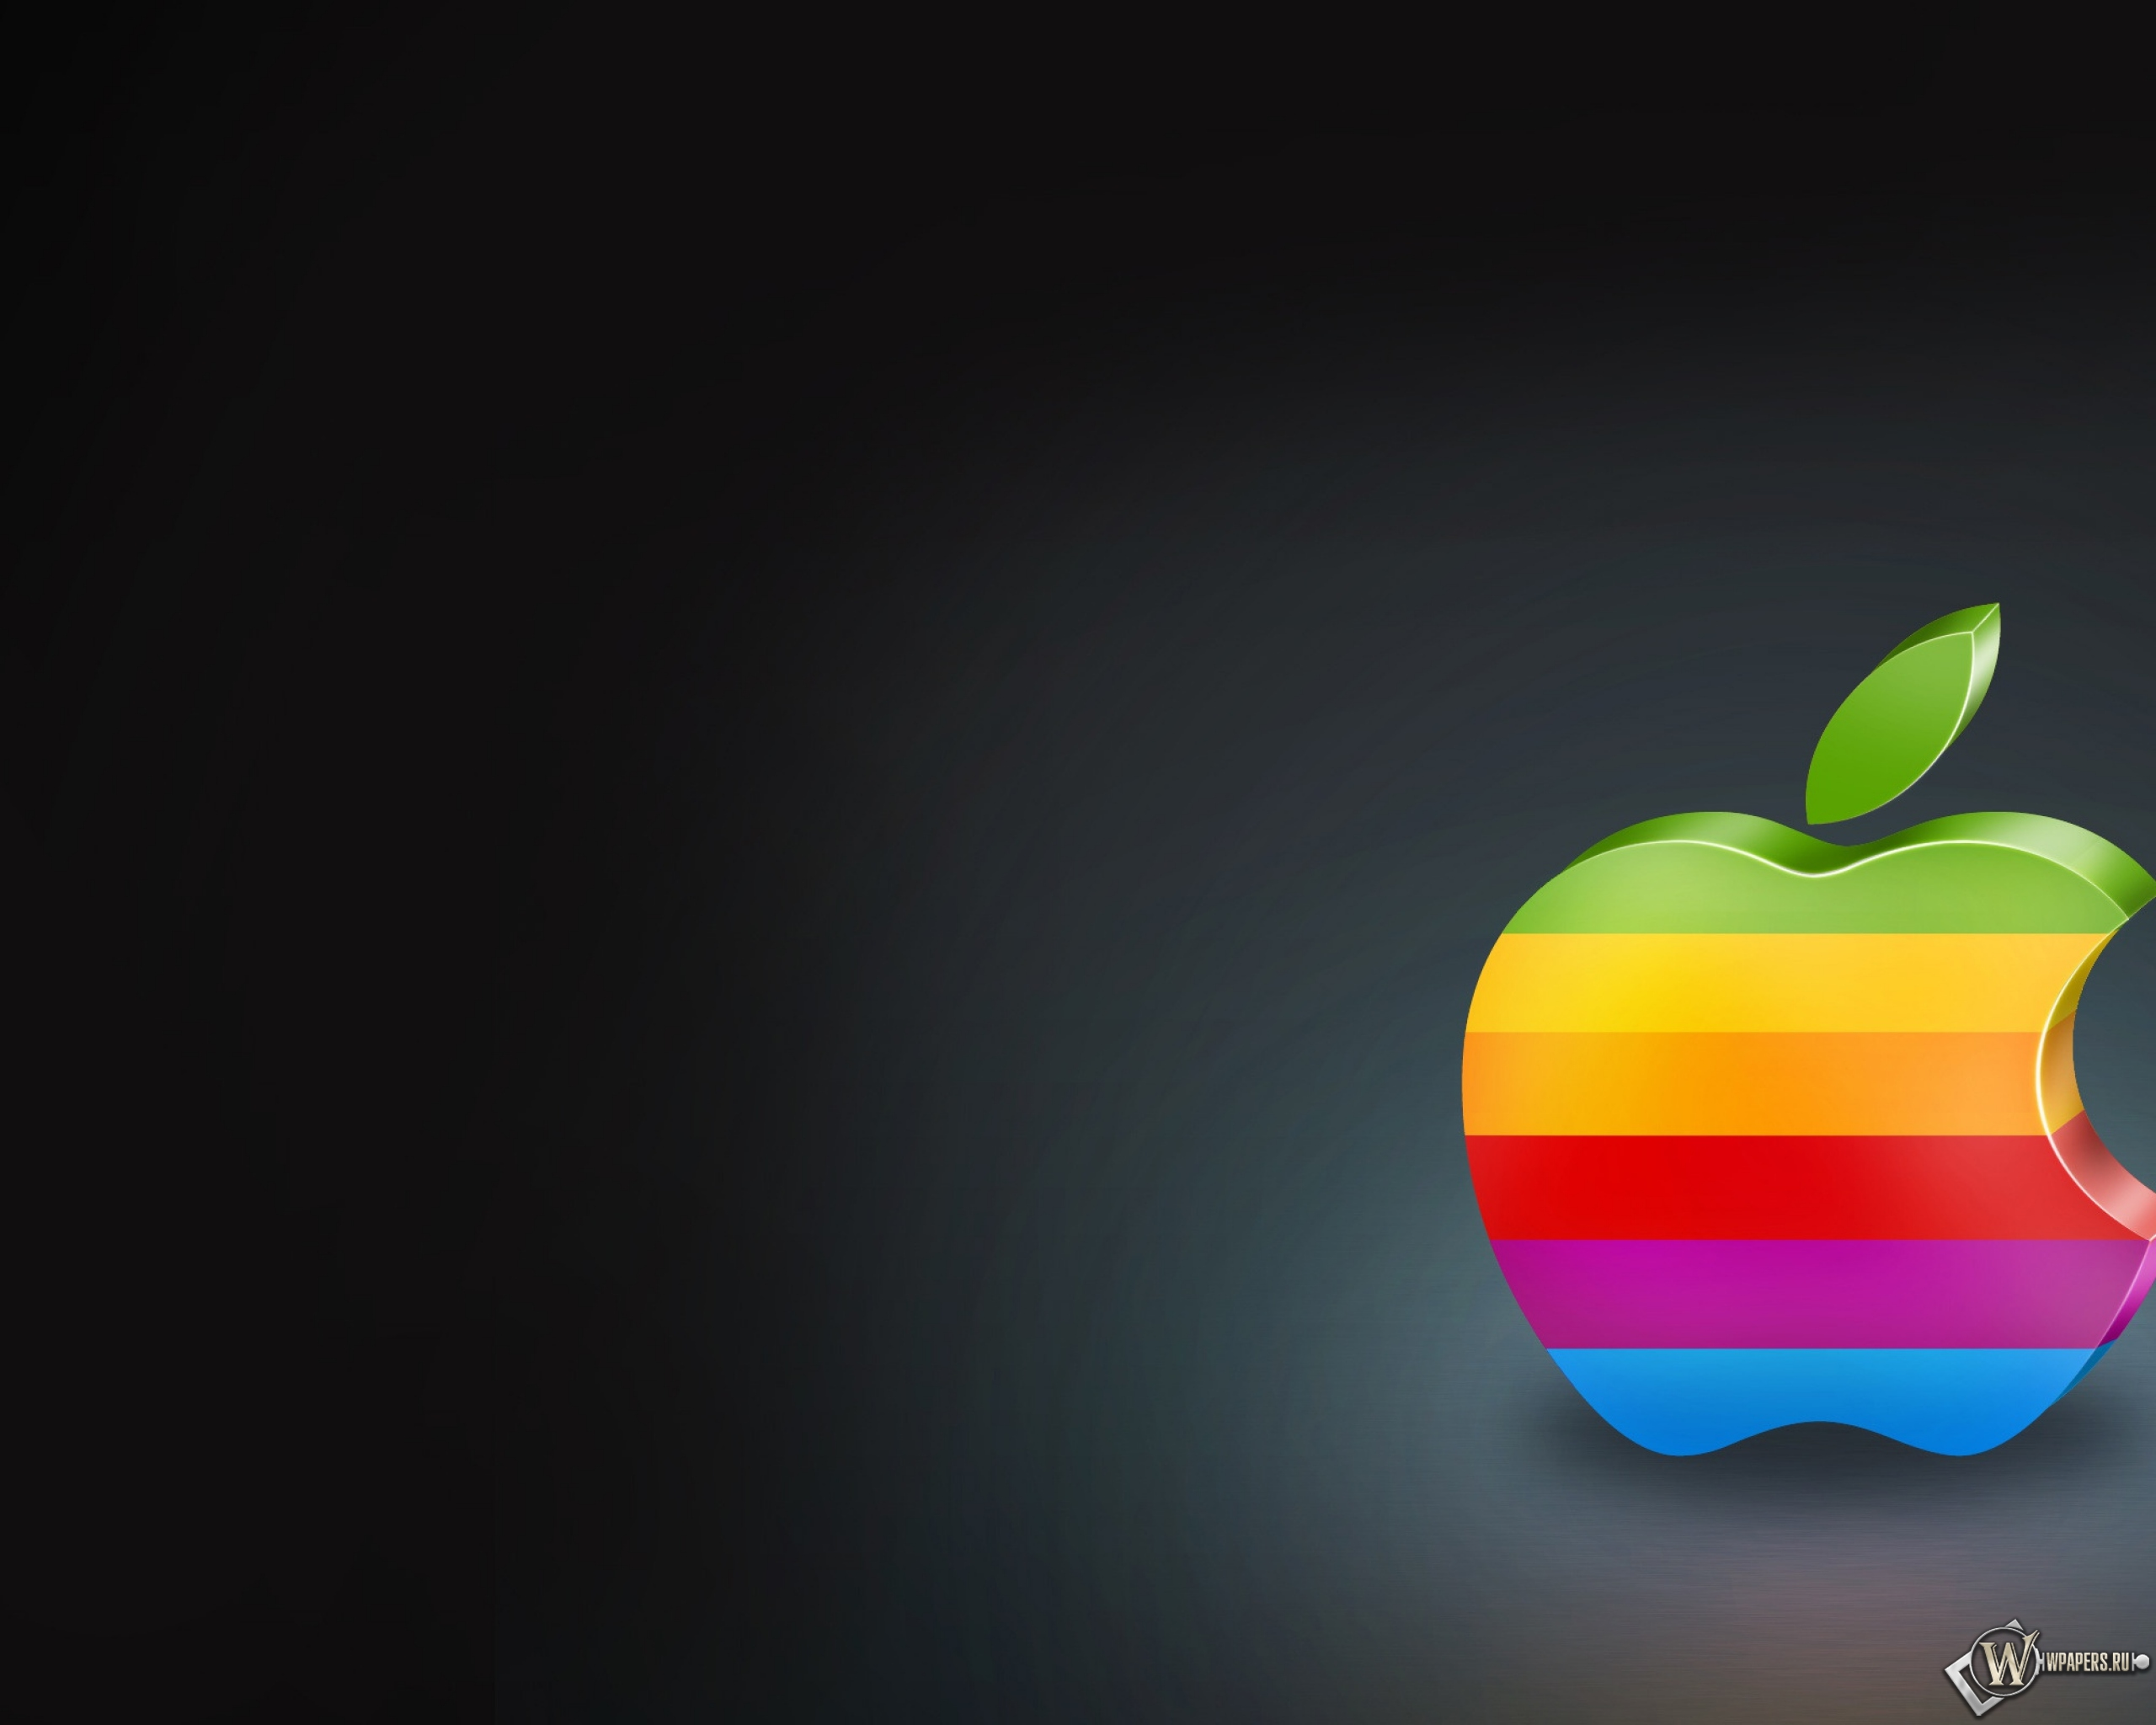 Apple Revolutionized Personal Technology With The Introduction Of The Macintosh In 1984 Today Apple Leads The World In Innovation With IPhone IPad Mac A